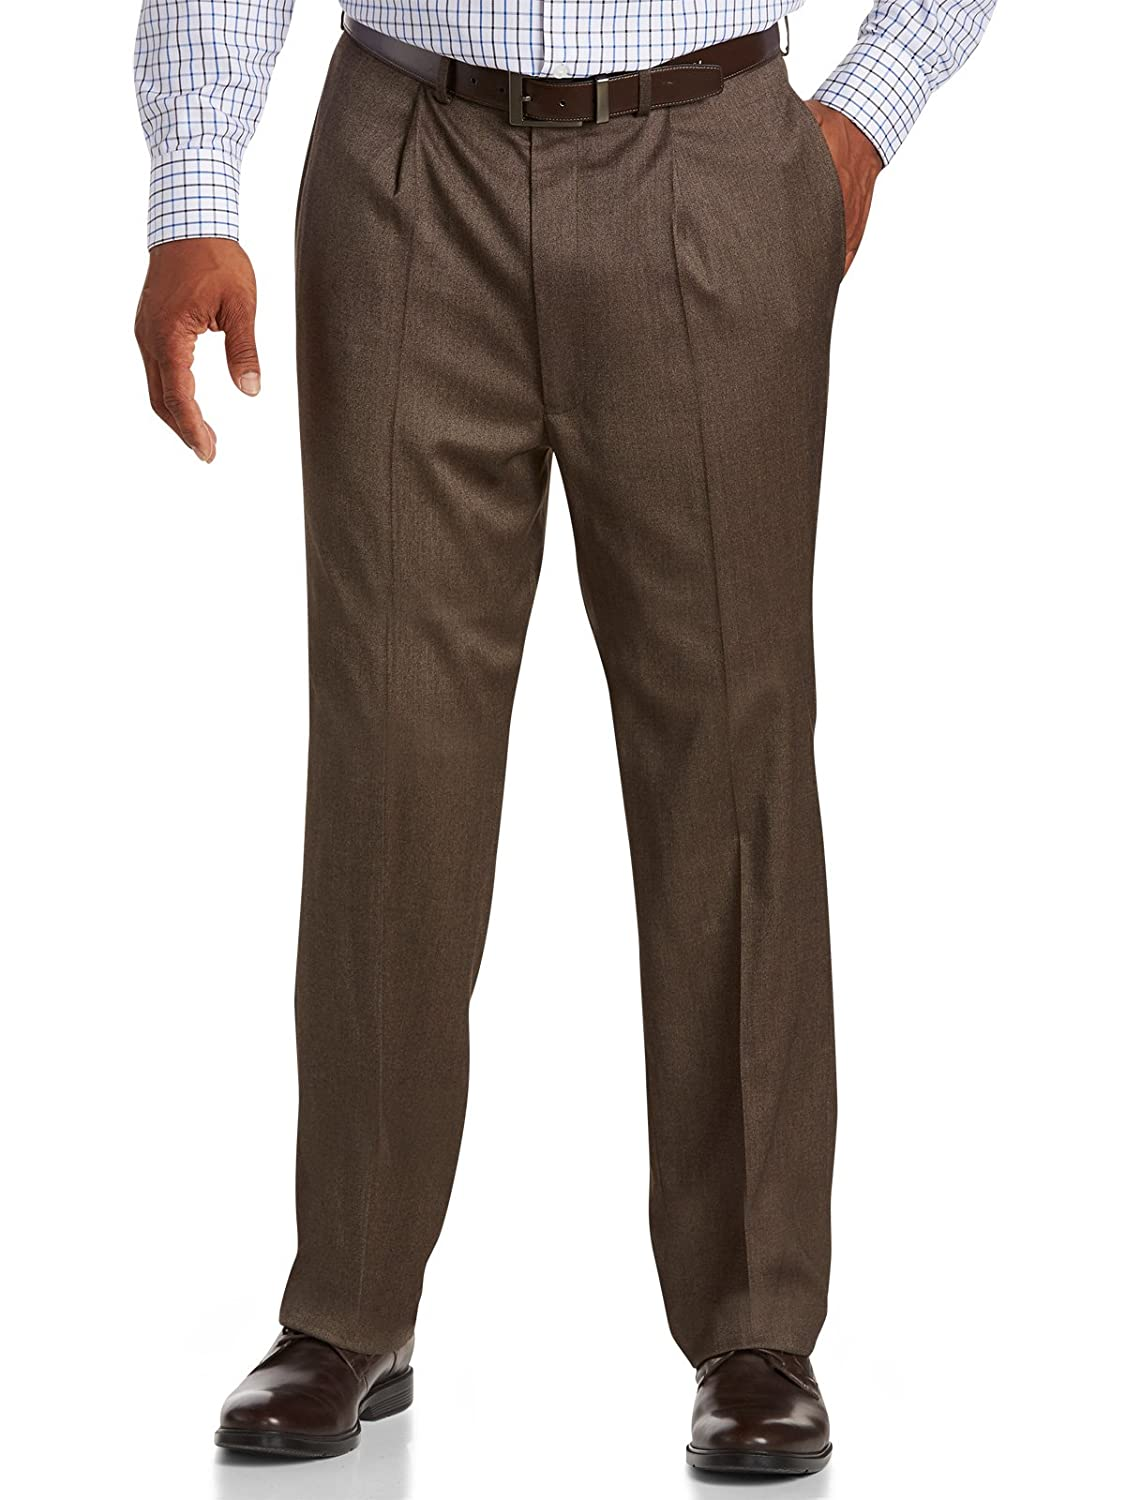 Geoffrey Beene Big & Tall Textured Solid Suit Pants